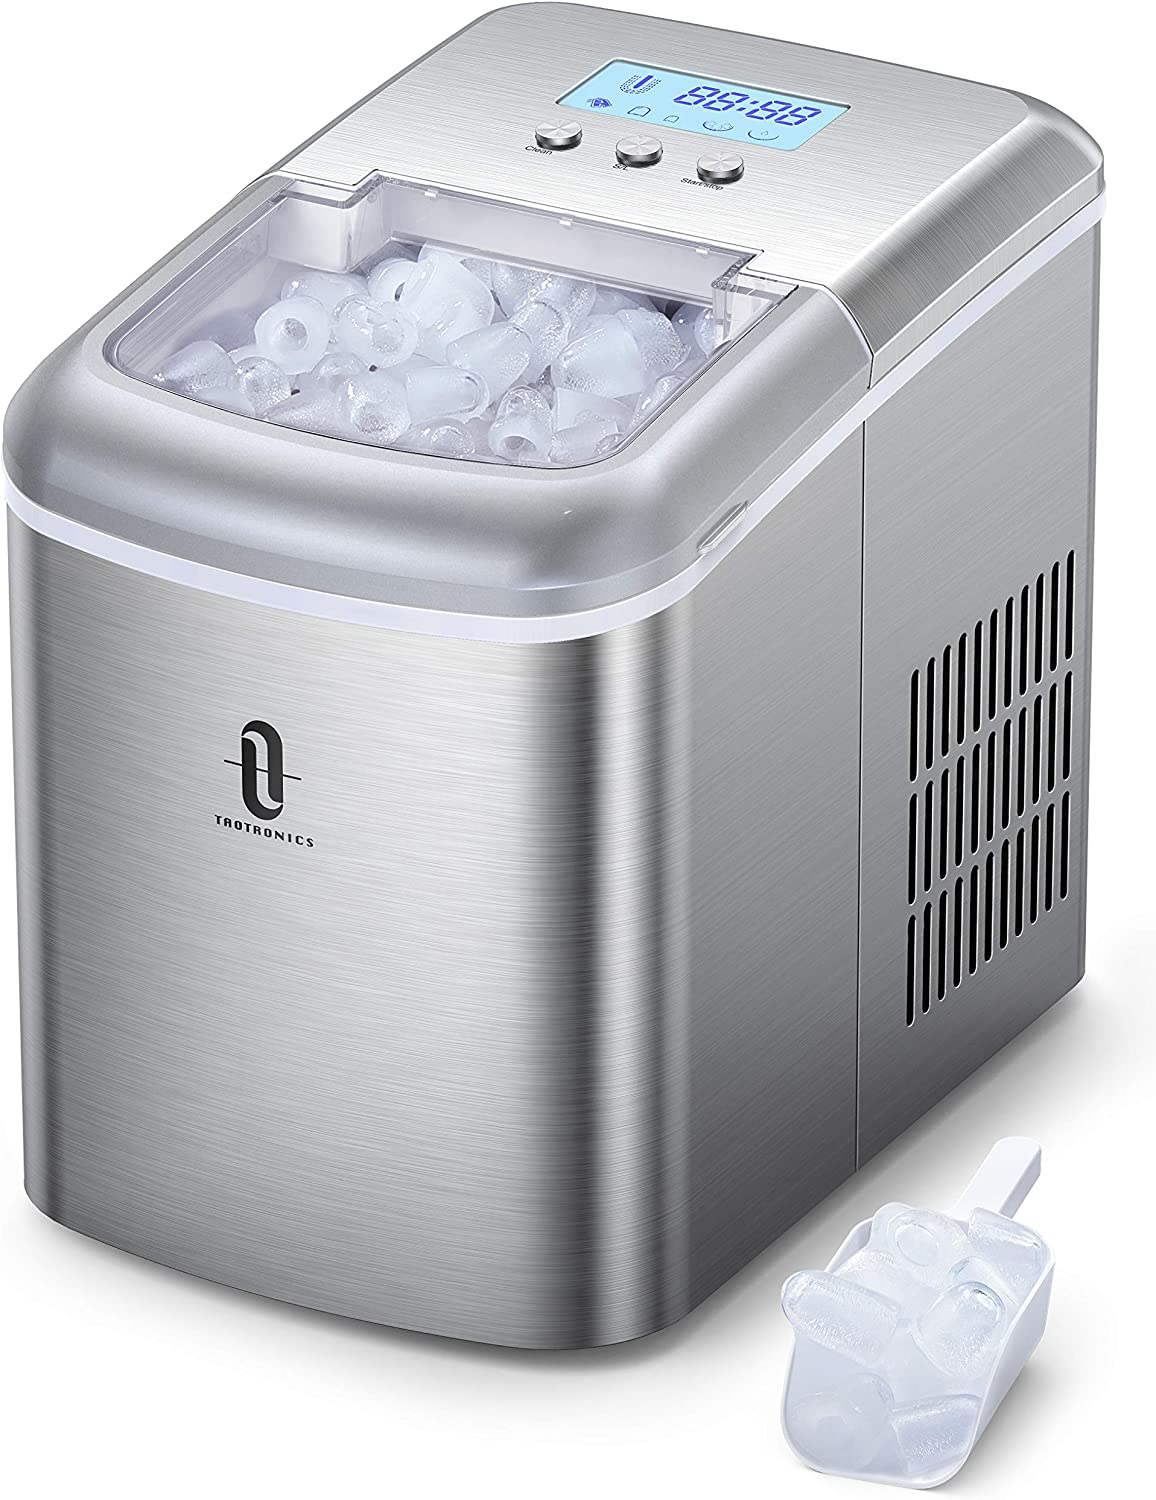 TaoTronics TT-IC002 Countertop Machine with LCD Display, Self-Cleaning Function, 9 Bullet Cubes Ready in 6-9 Mins, 26lbs/24H, 2.1L Electric Ice Maker with Scoop Basket for Home Kitchen Office Bar